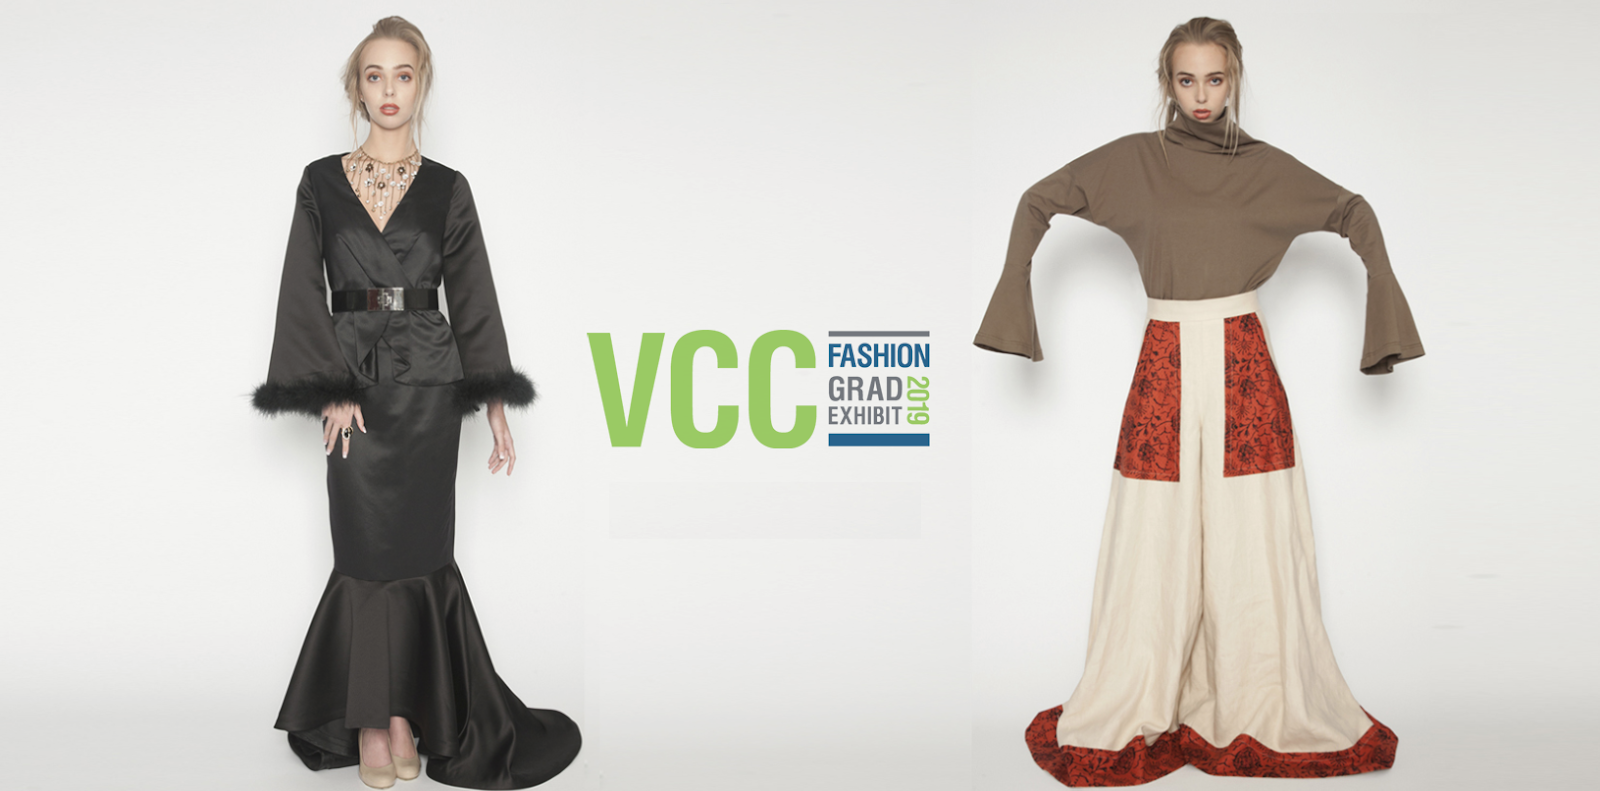 Vancouver Fashion Week Fw19 Vancouver Community College Fashion Grad Exhibit 2019